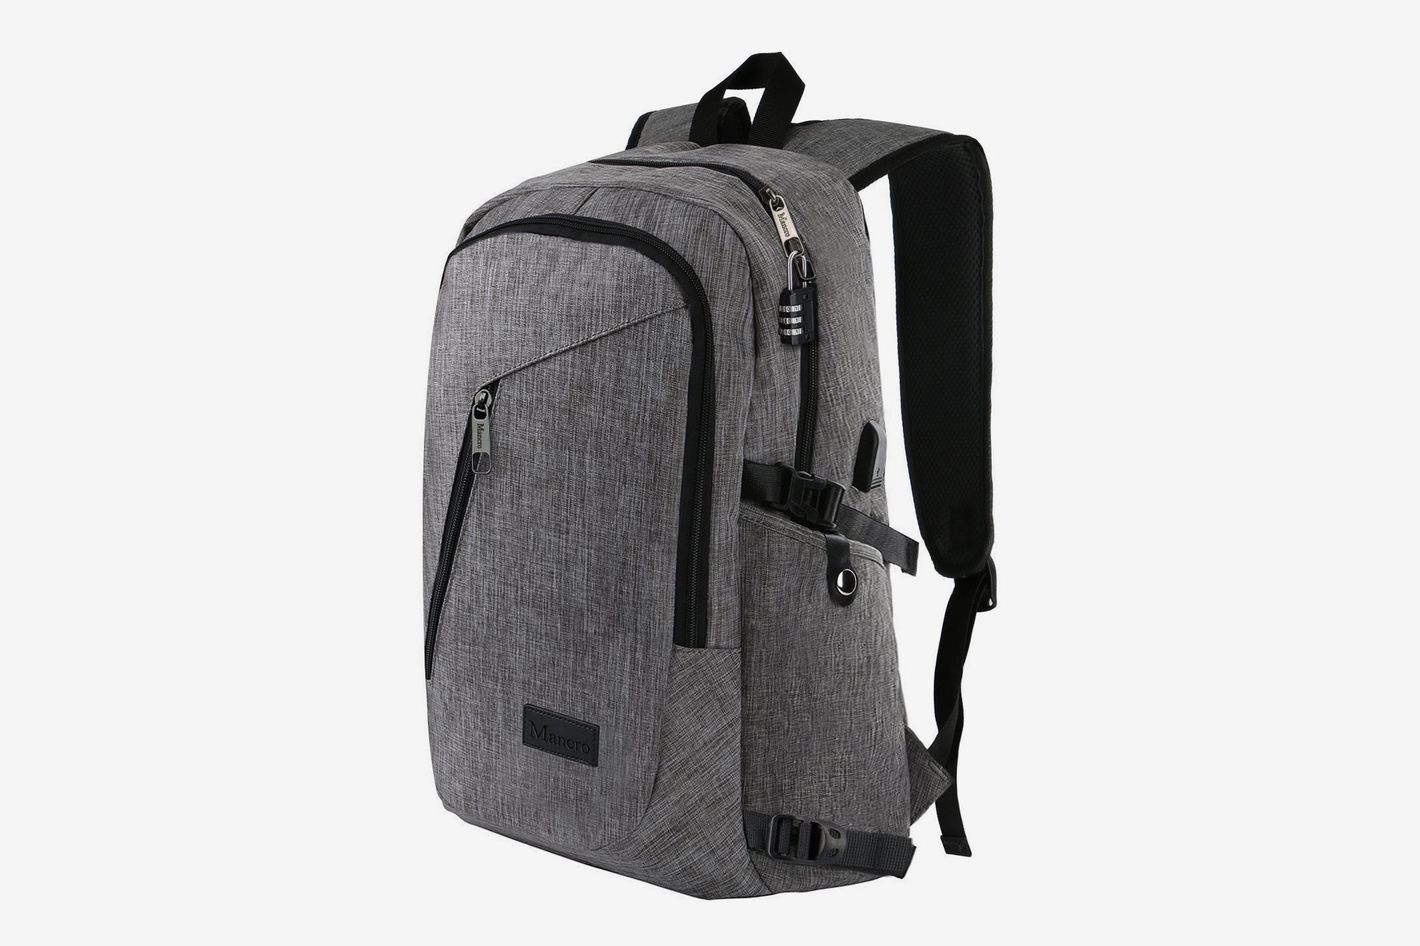 ab1f97e9e81c Mancro Laptop Backpack at Amazon